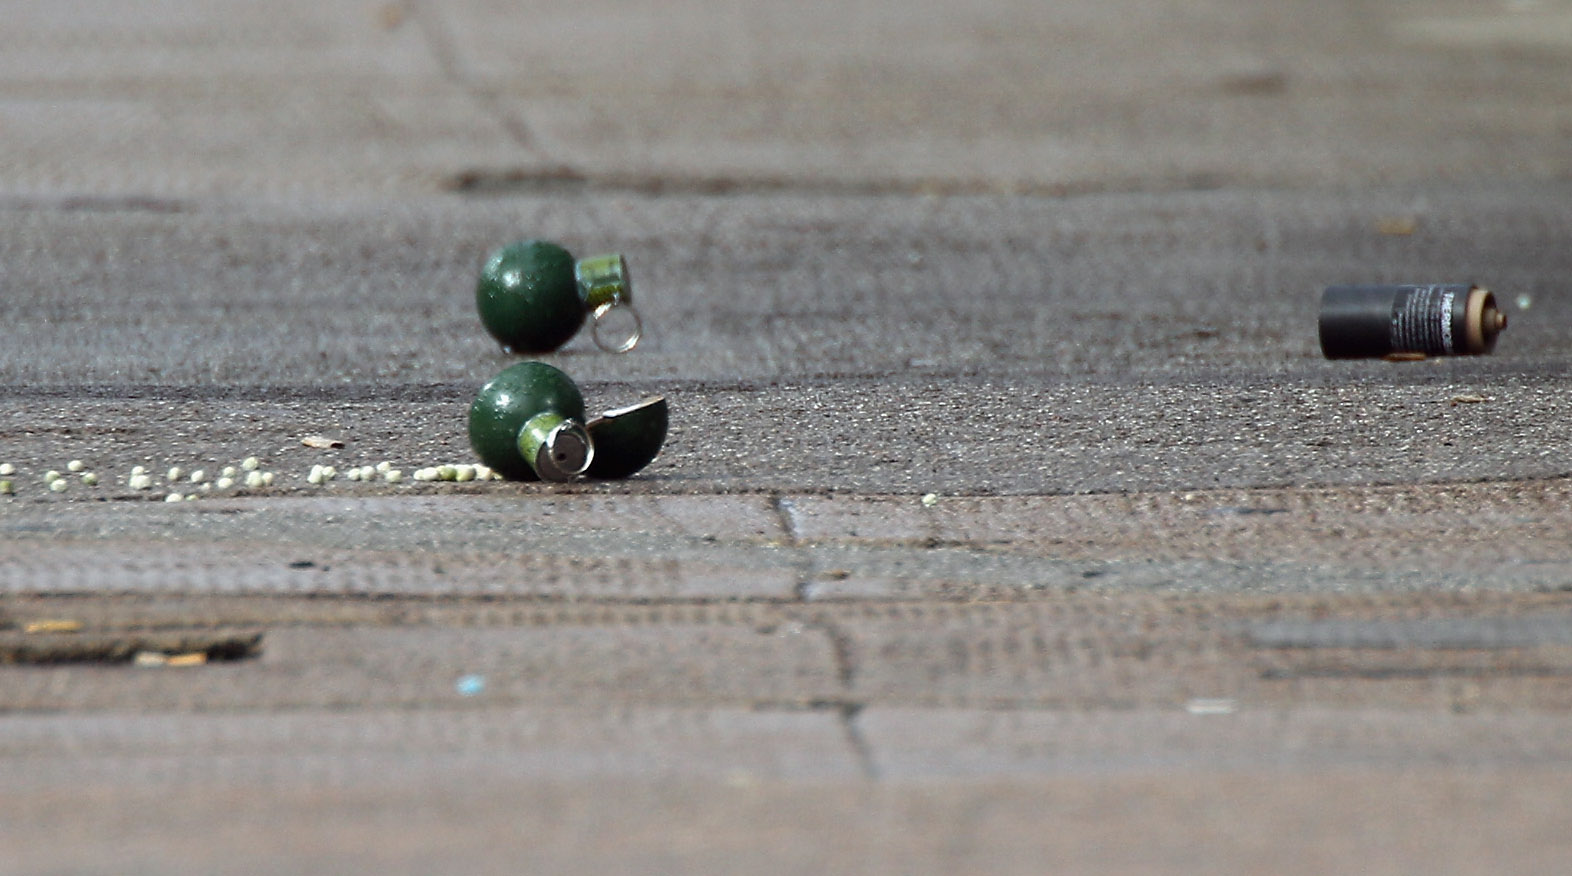 GLASGOW, SCOTLAND - SEPTEMBER 10:  Grenades lay on a pavement on Dumbarton Road during an ongoing incident on September 10, 2010 in Glasgow, Scotland. Armed response units were called to a property in the West End following reports of grenades being thrown from a tenement flat. A man has barricaded himself inside the flat following a domestic disturbance.  (Photo by Jeff J Mitchell/Getty Images)